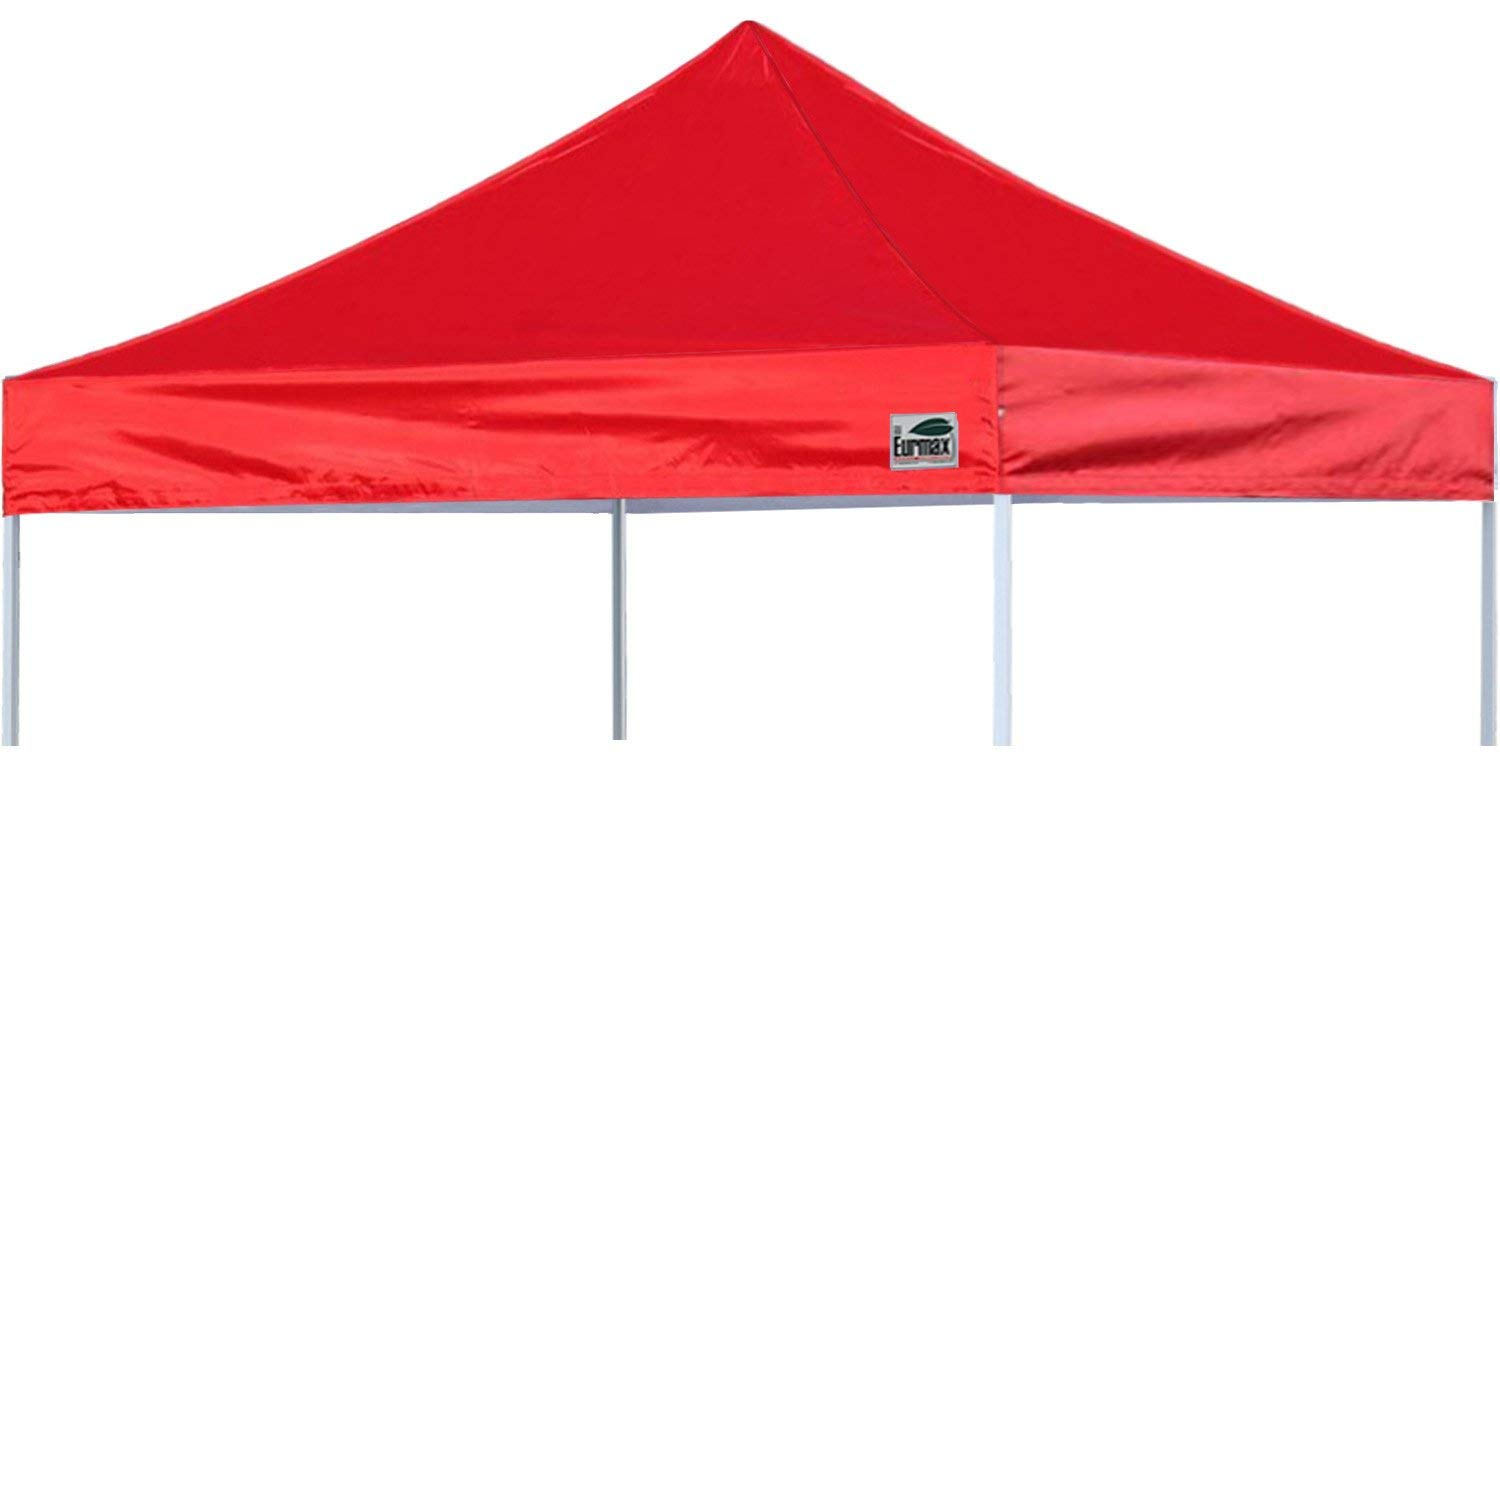 Eurmax New Pop up 10x10 Replacement Instant Ez Canopy Top Cover Choose 15 Colors